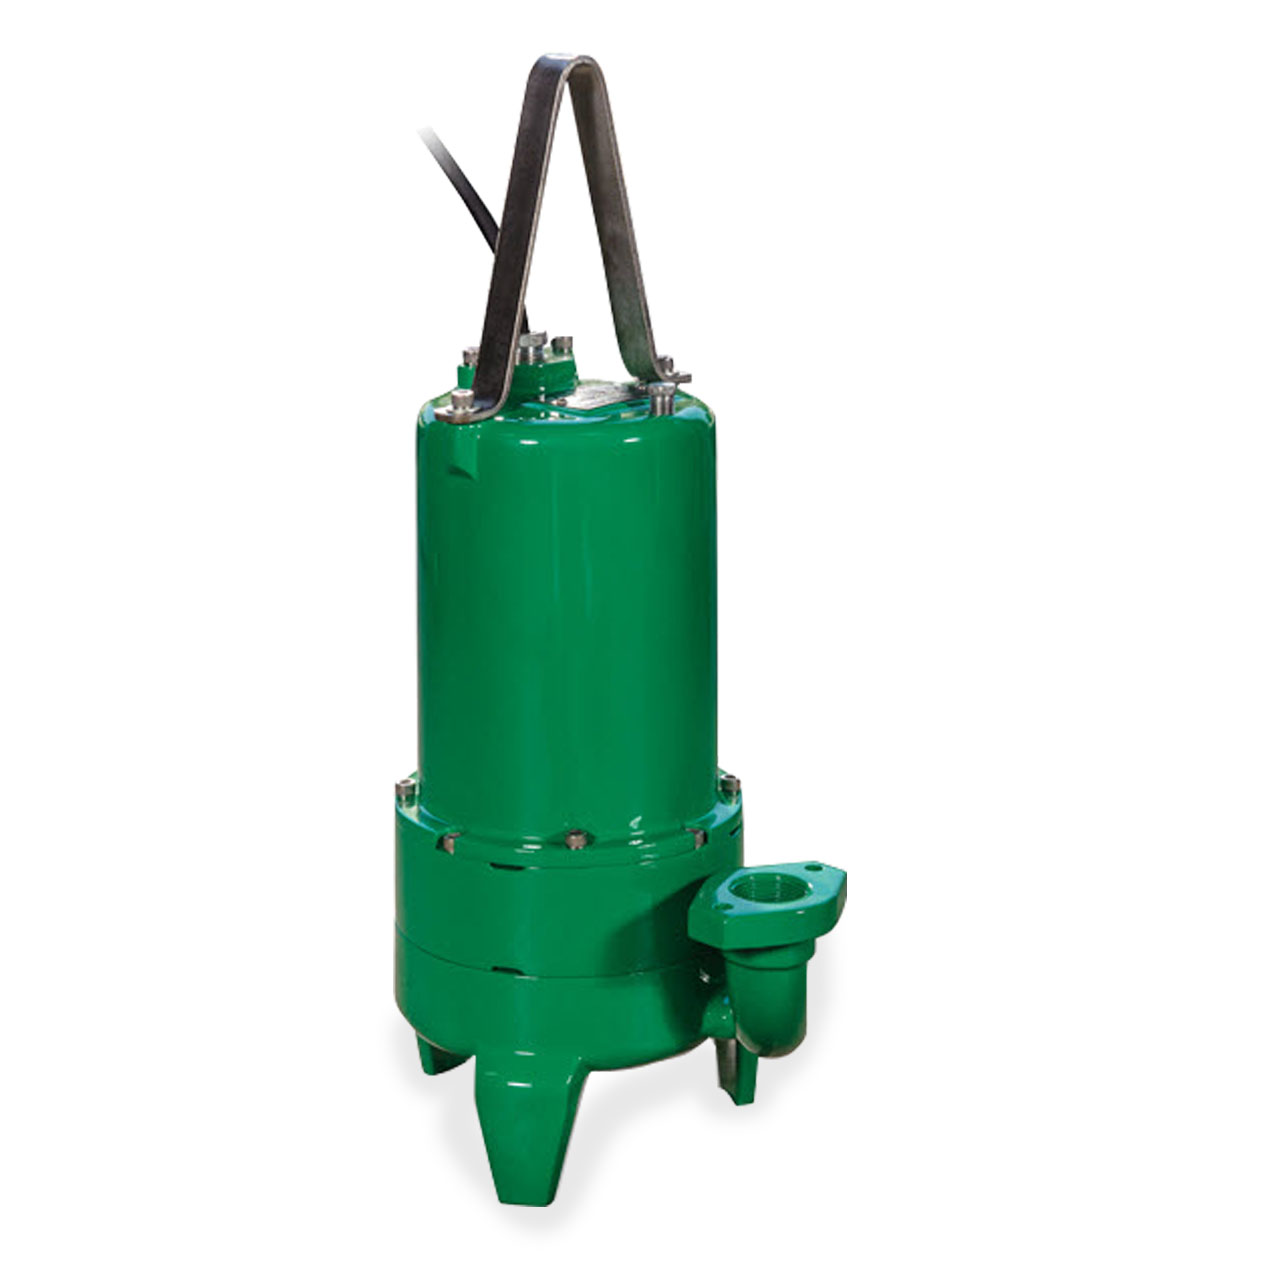 hight resolution of myers myers vrs20m 21 vr2 residential submersible grinder pump 2 0myers myers vrs20m 21 vr2 residential